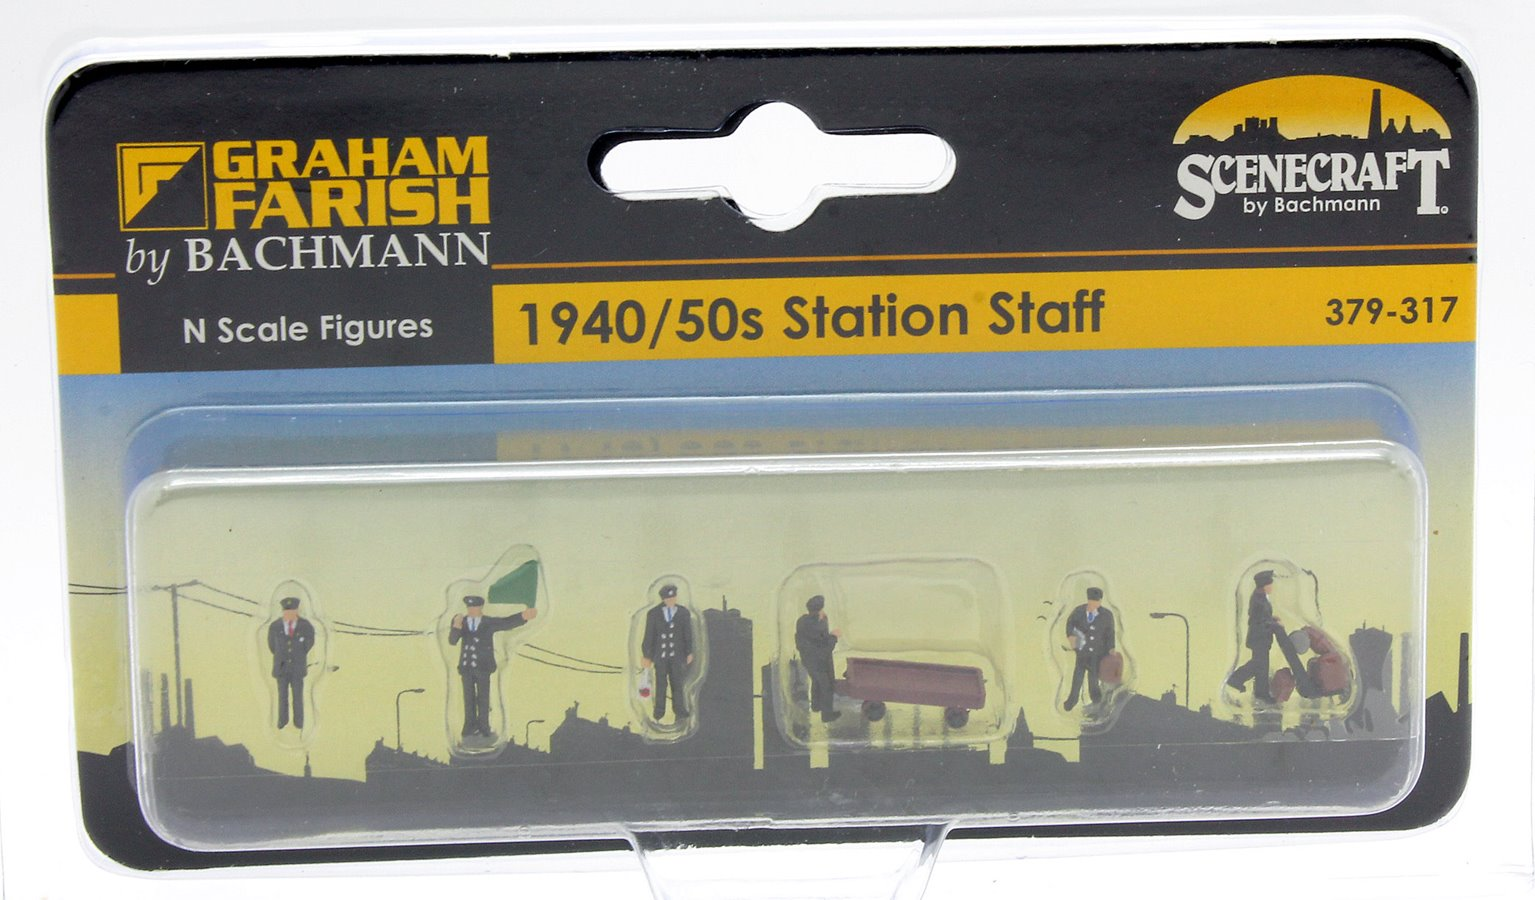 Figures - 1940/50s Station Staff